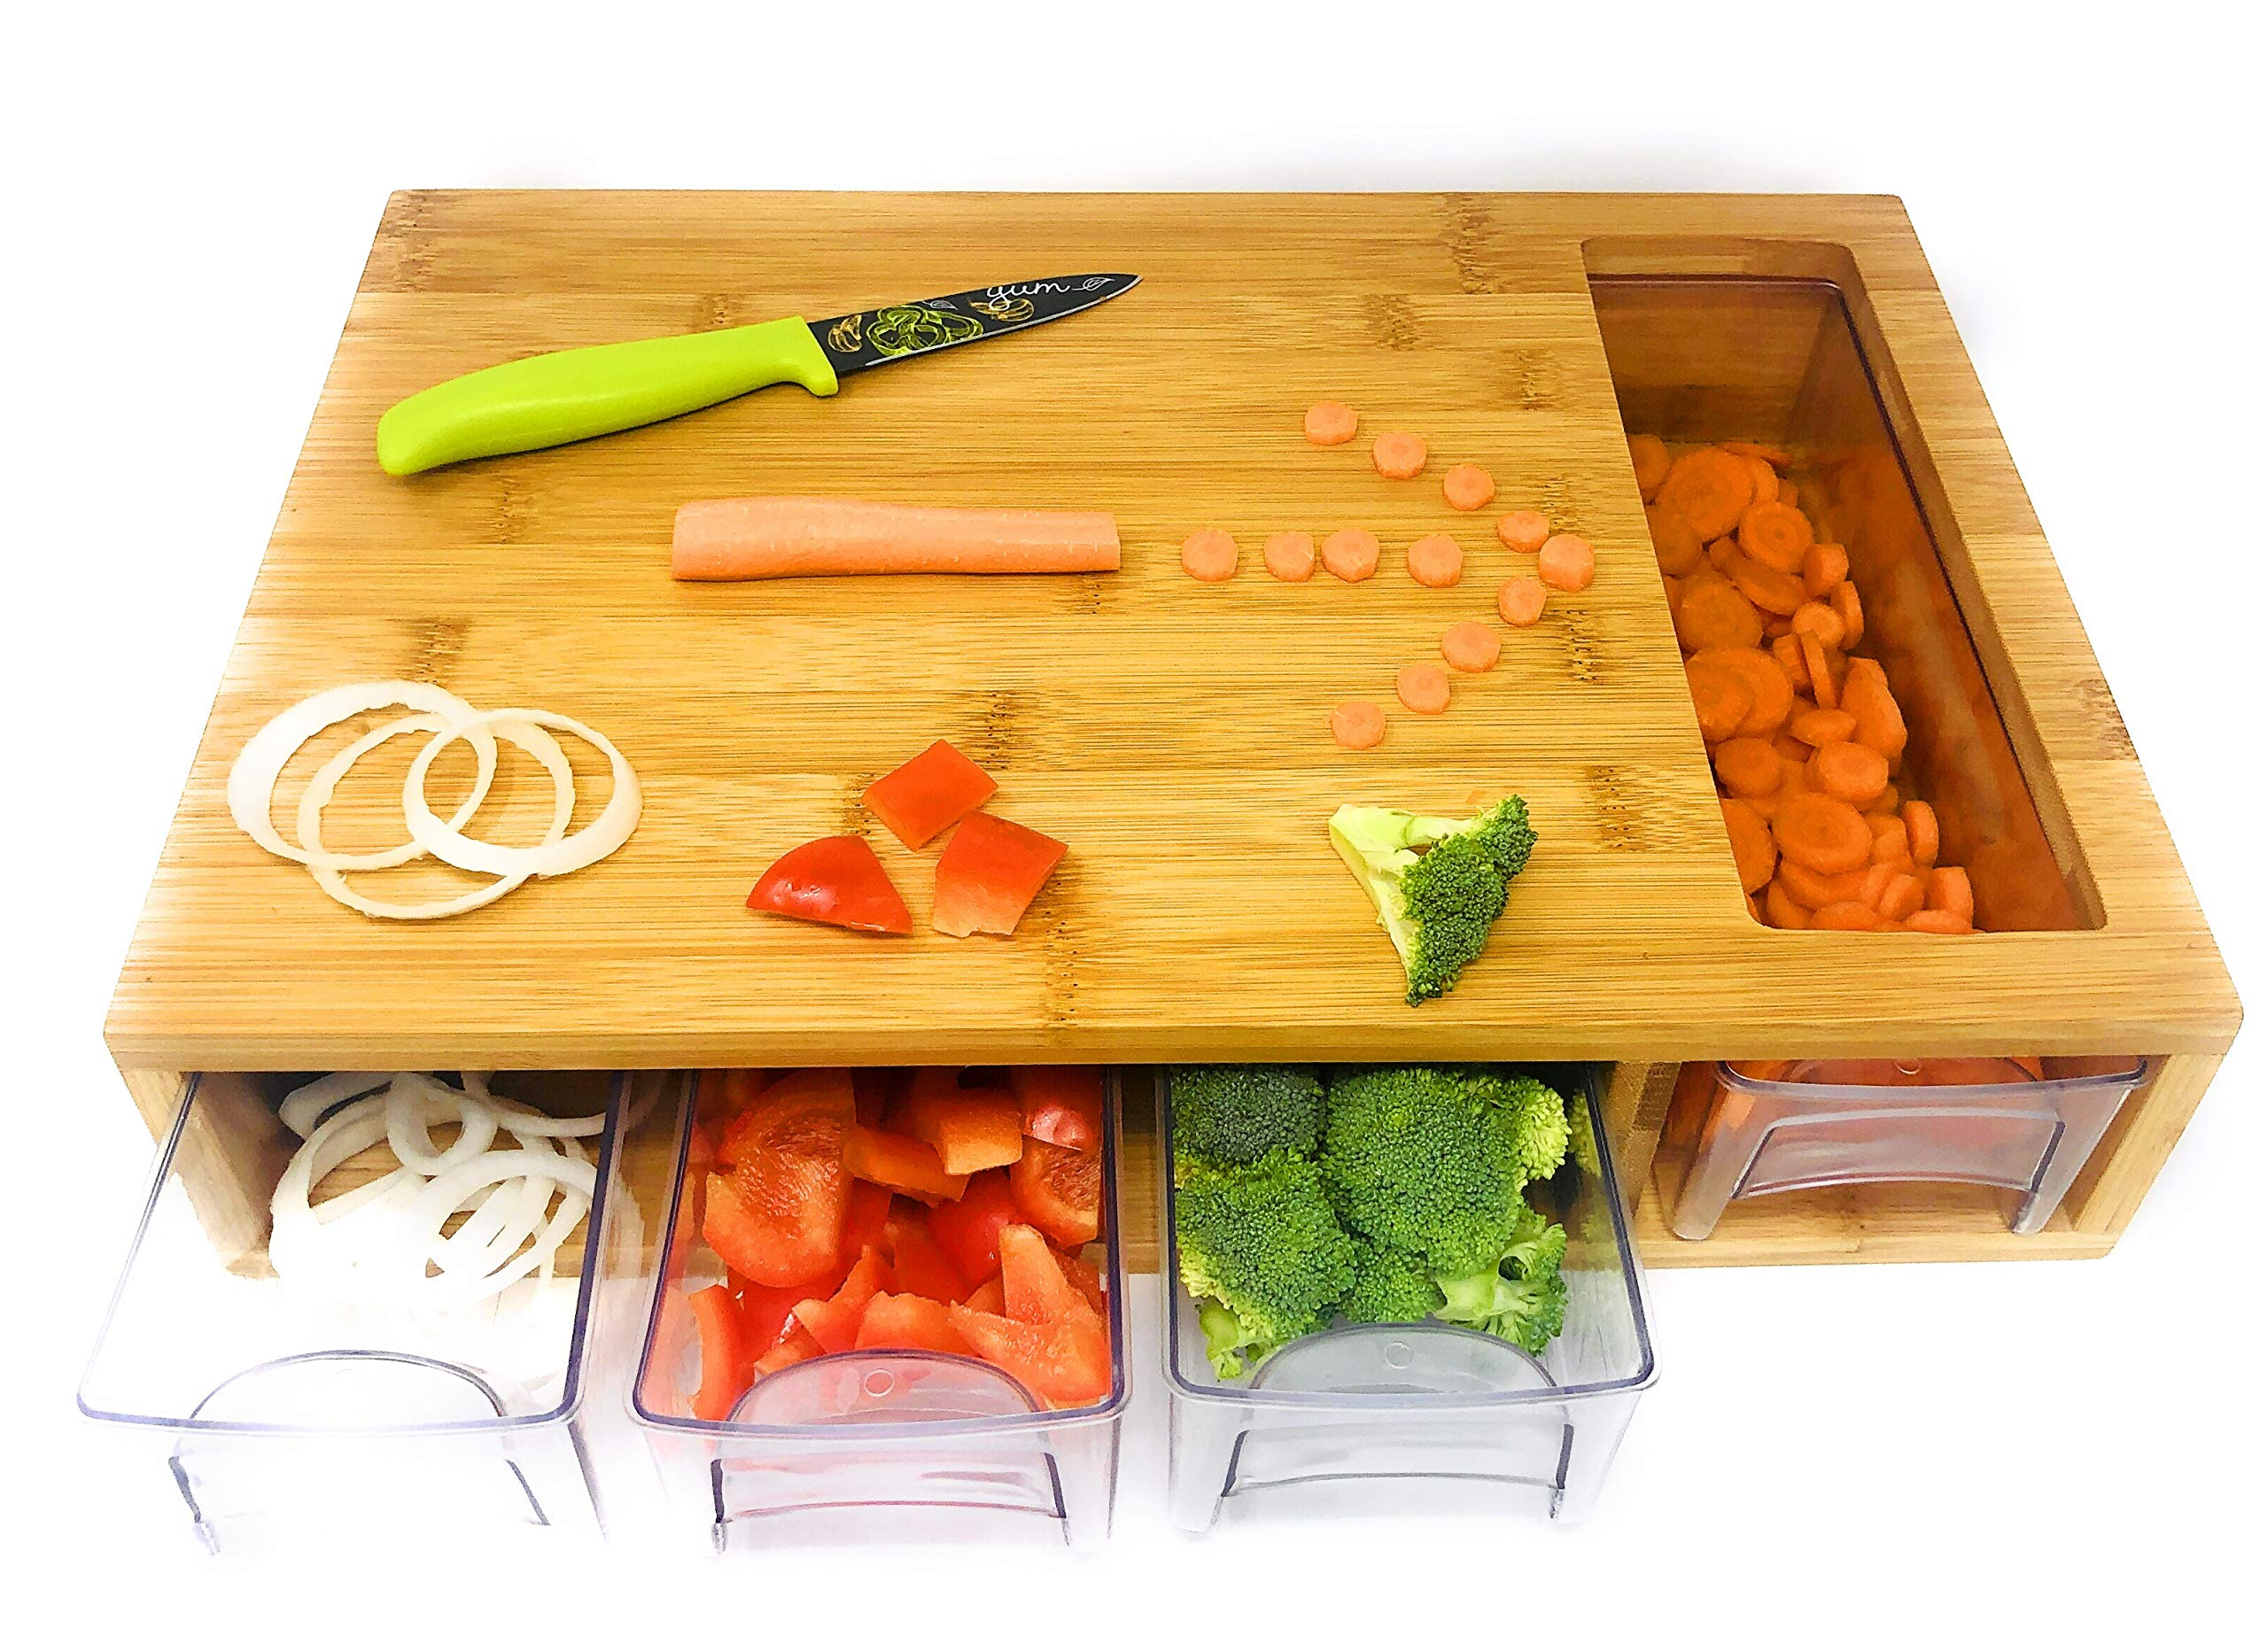 Bamboo Cutting Board With Trays/Drawers - Meal Prep Station - Naturally Antimicrobial - Cutting Board for Food Prep, Meat, Vegetables, Fruits, Crackers & Cheese by Sheldon & Duff